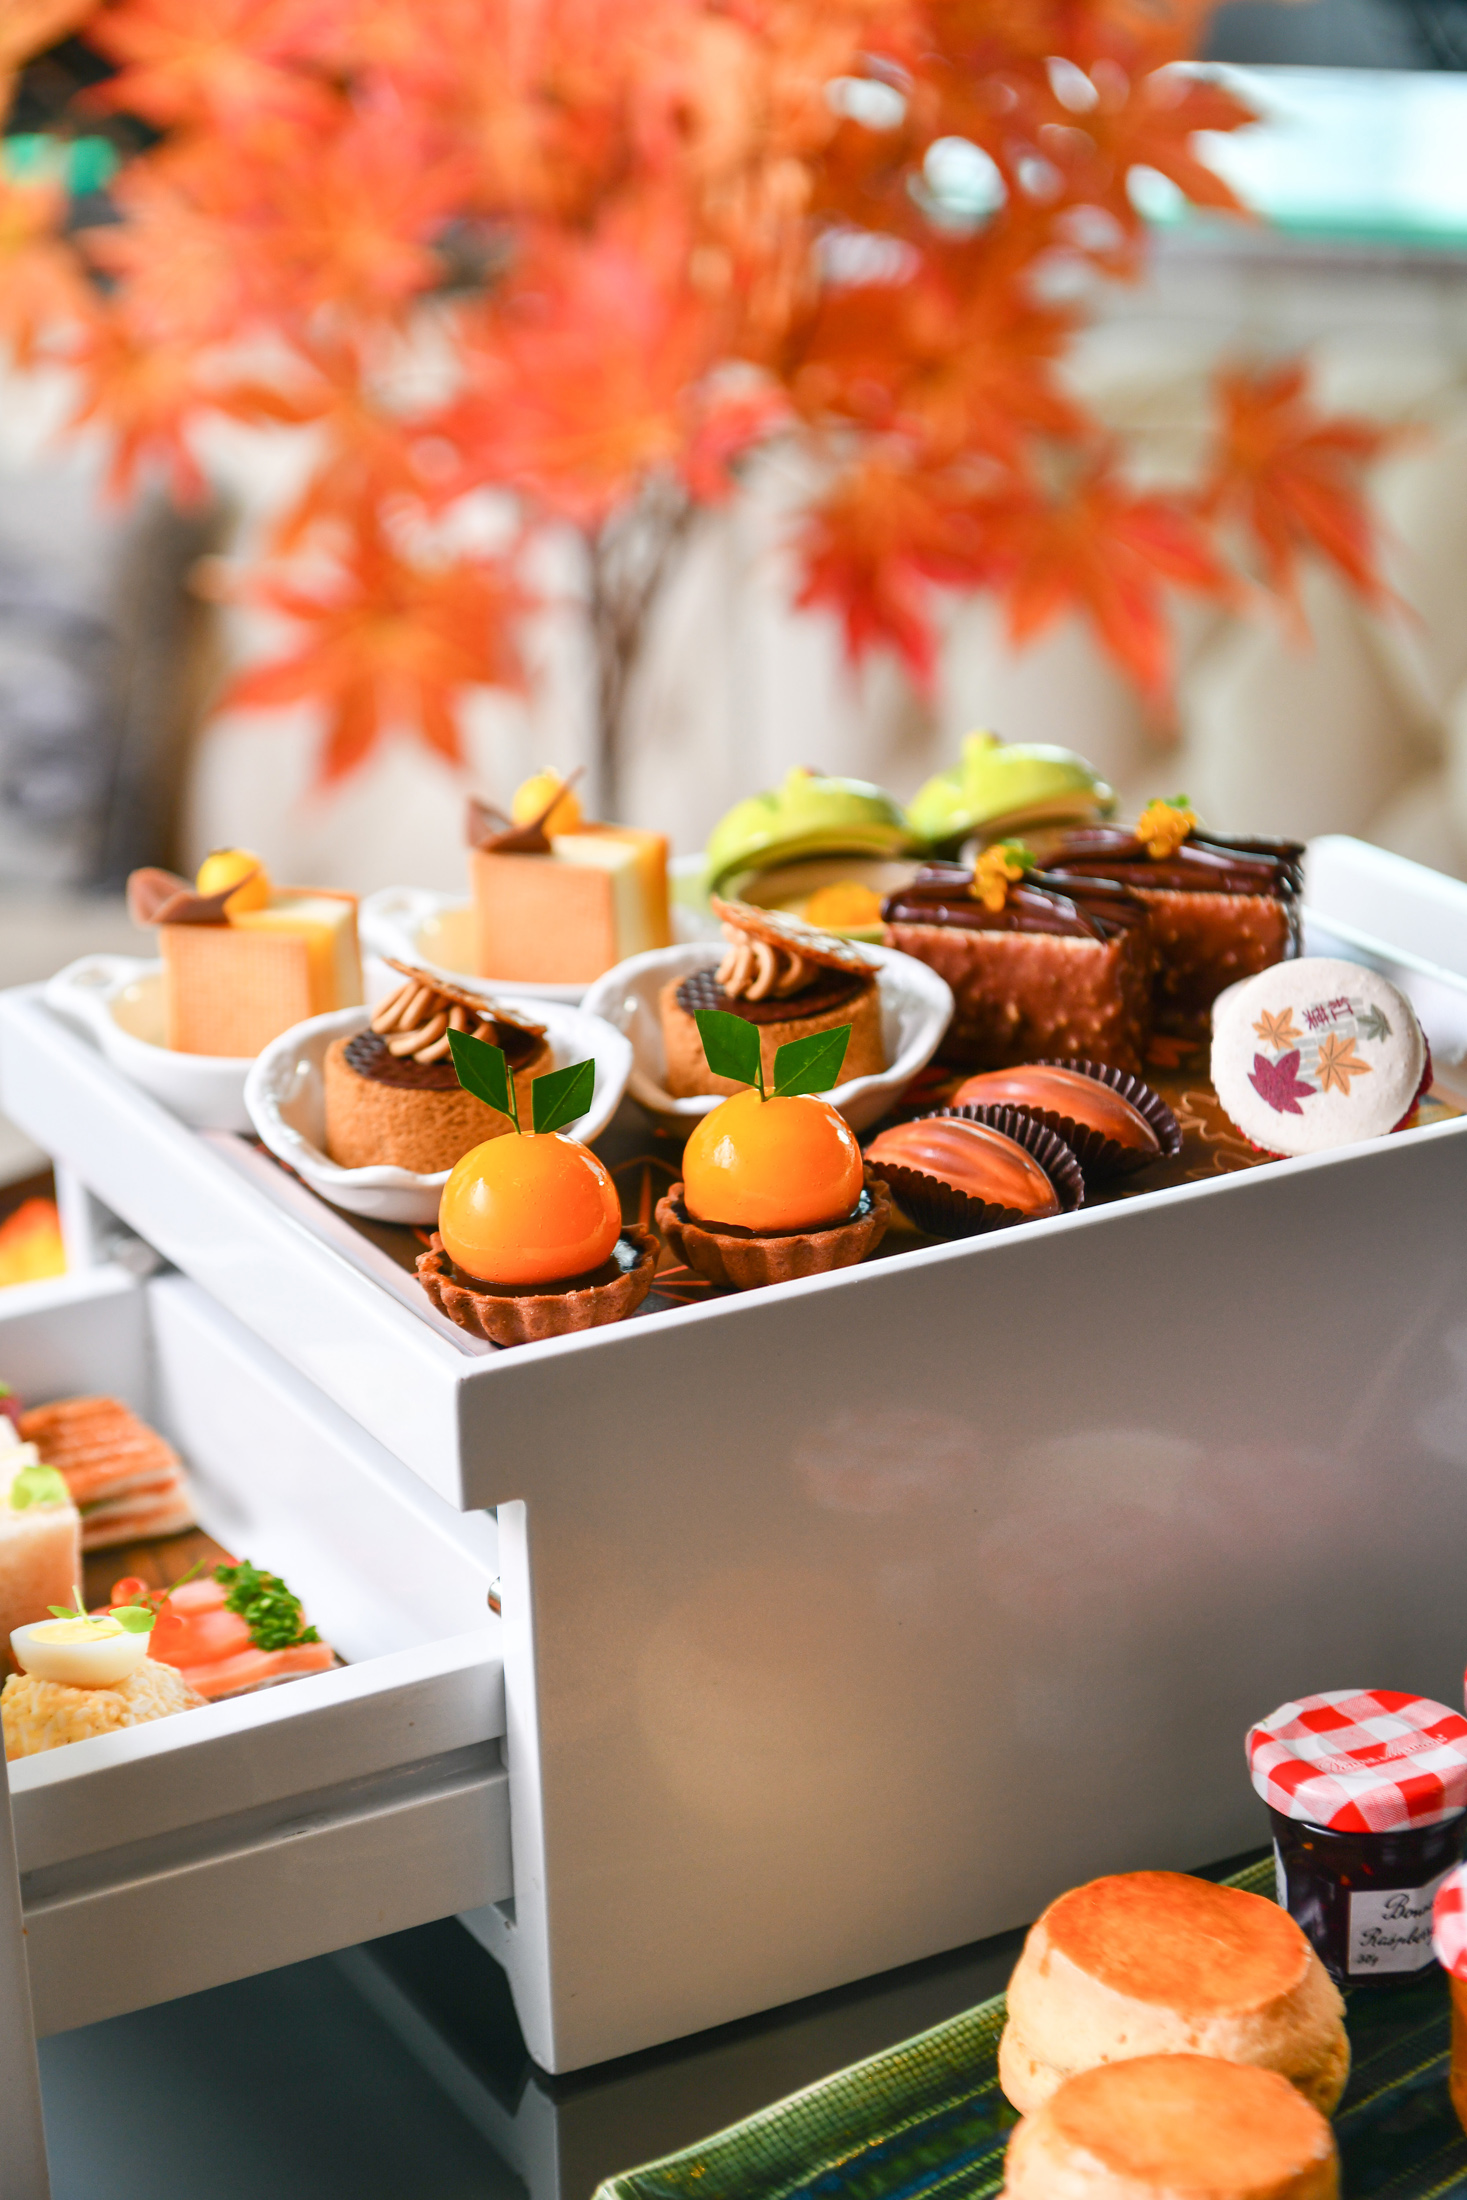 Up & Above Bar_Autumn Orange Afternoon Tea_2.jpg